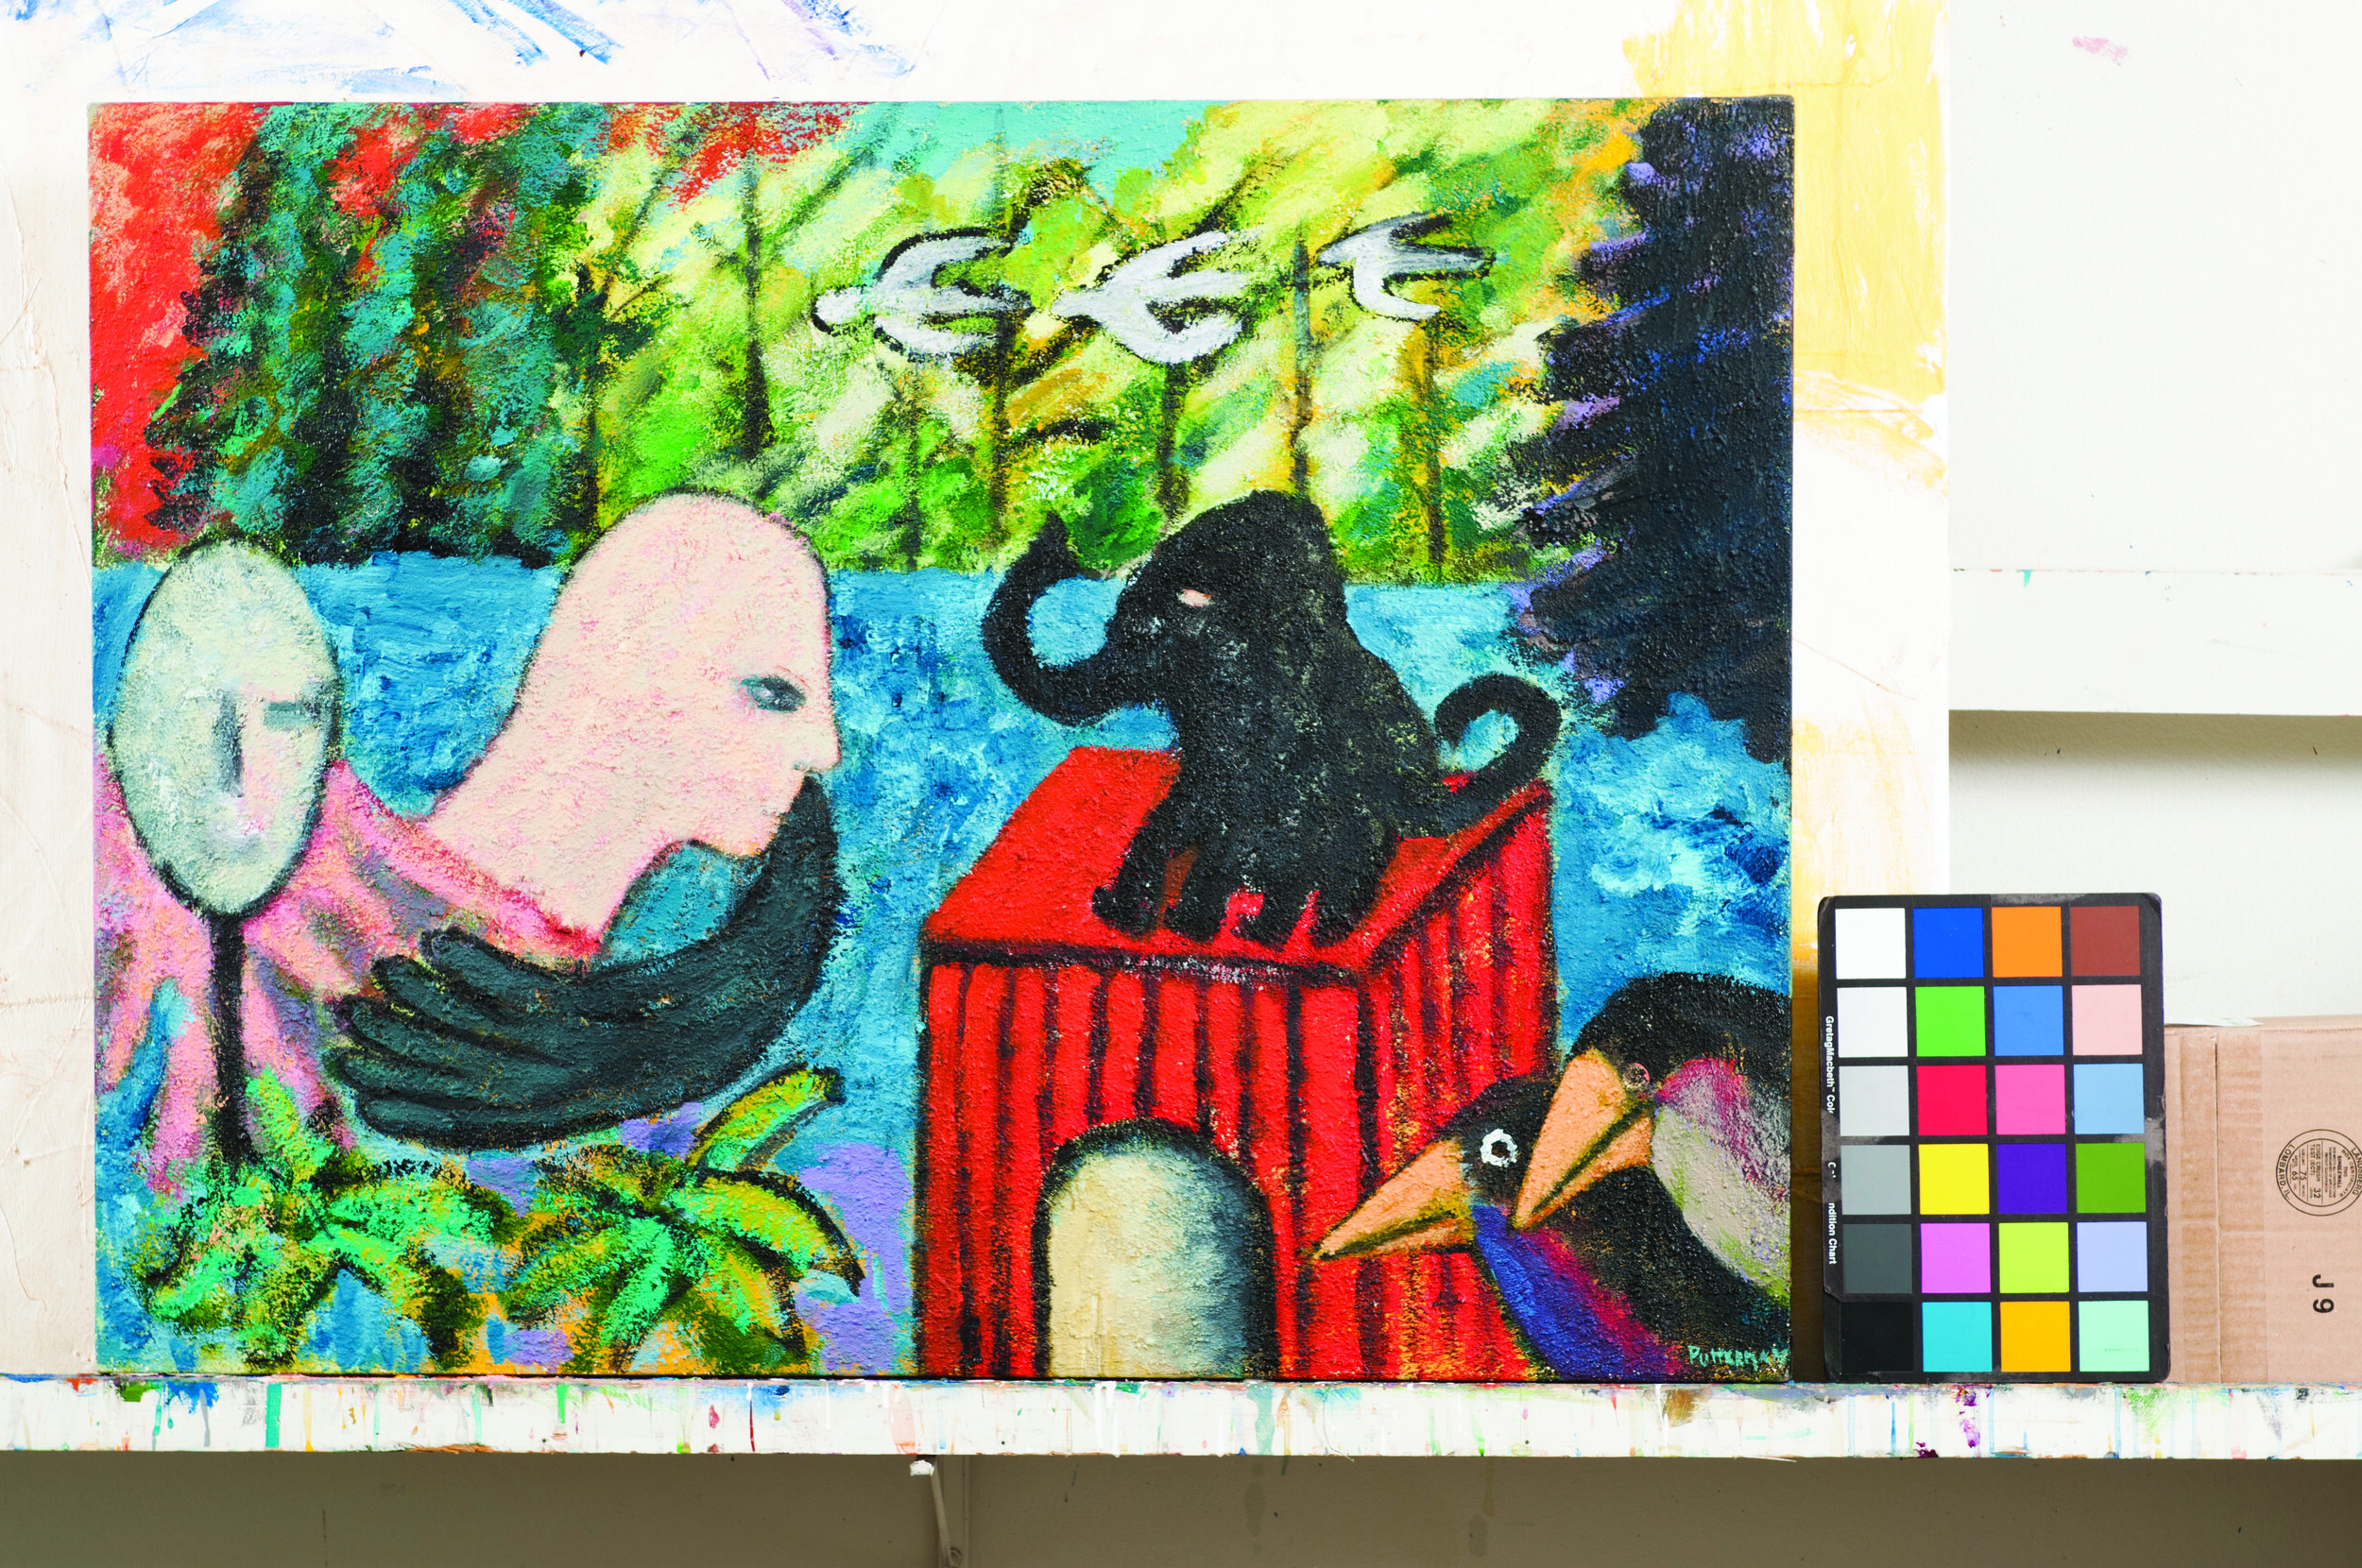 Abstract painting dominated with a human figure on the left side approaching to the black elephant on the right side, with the background of nature.